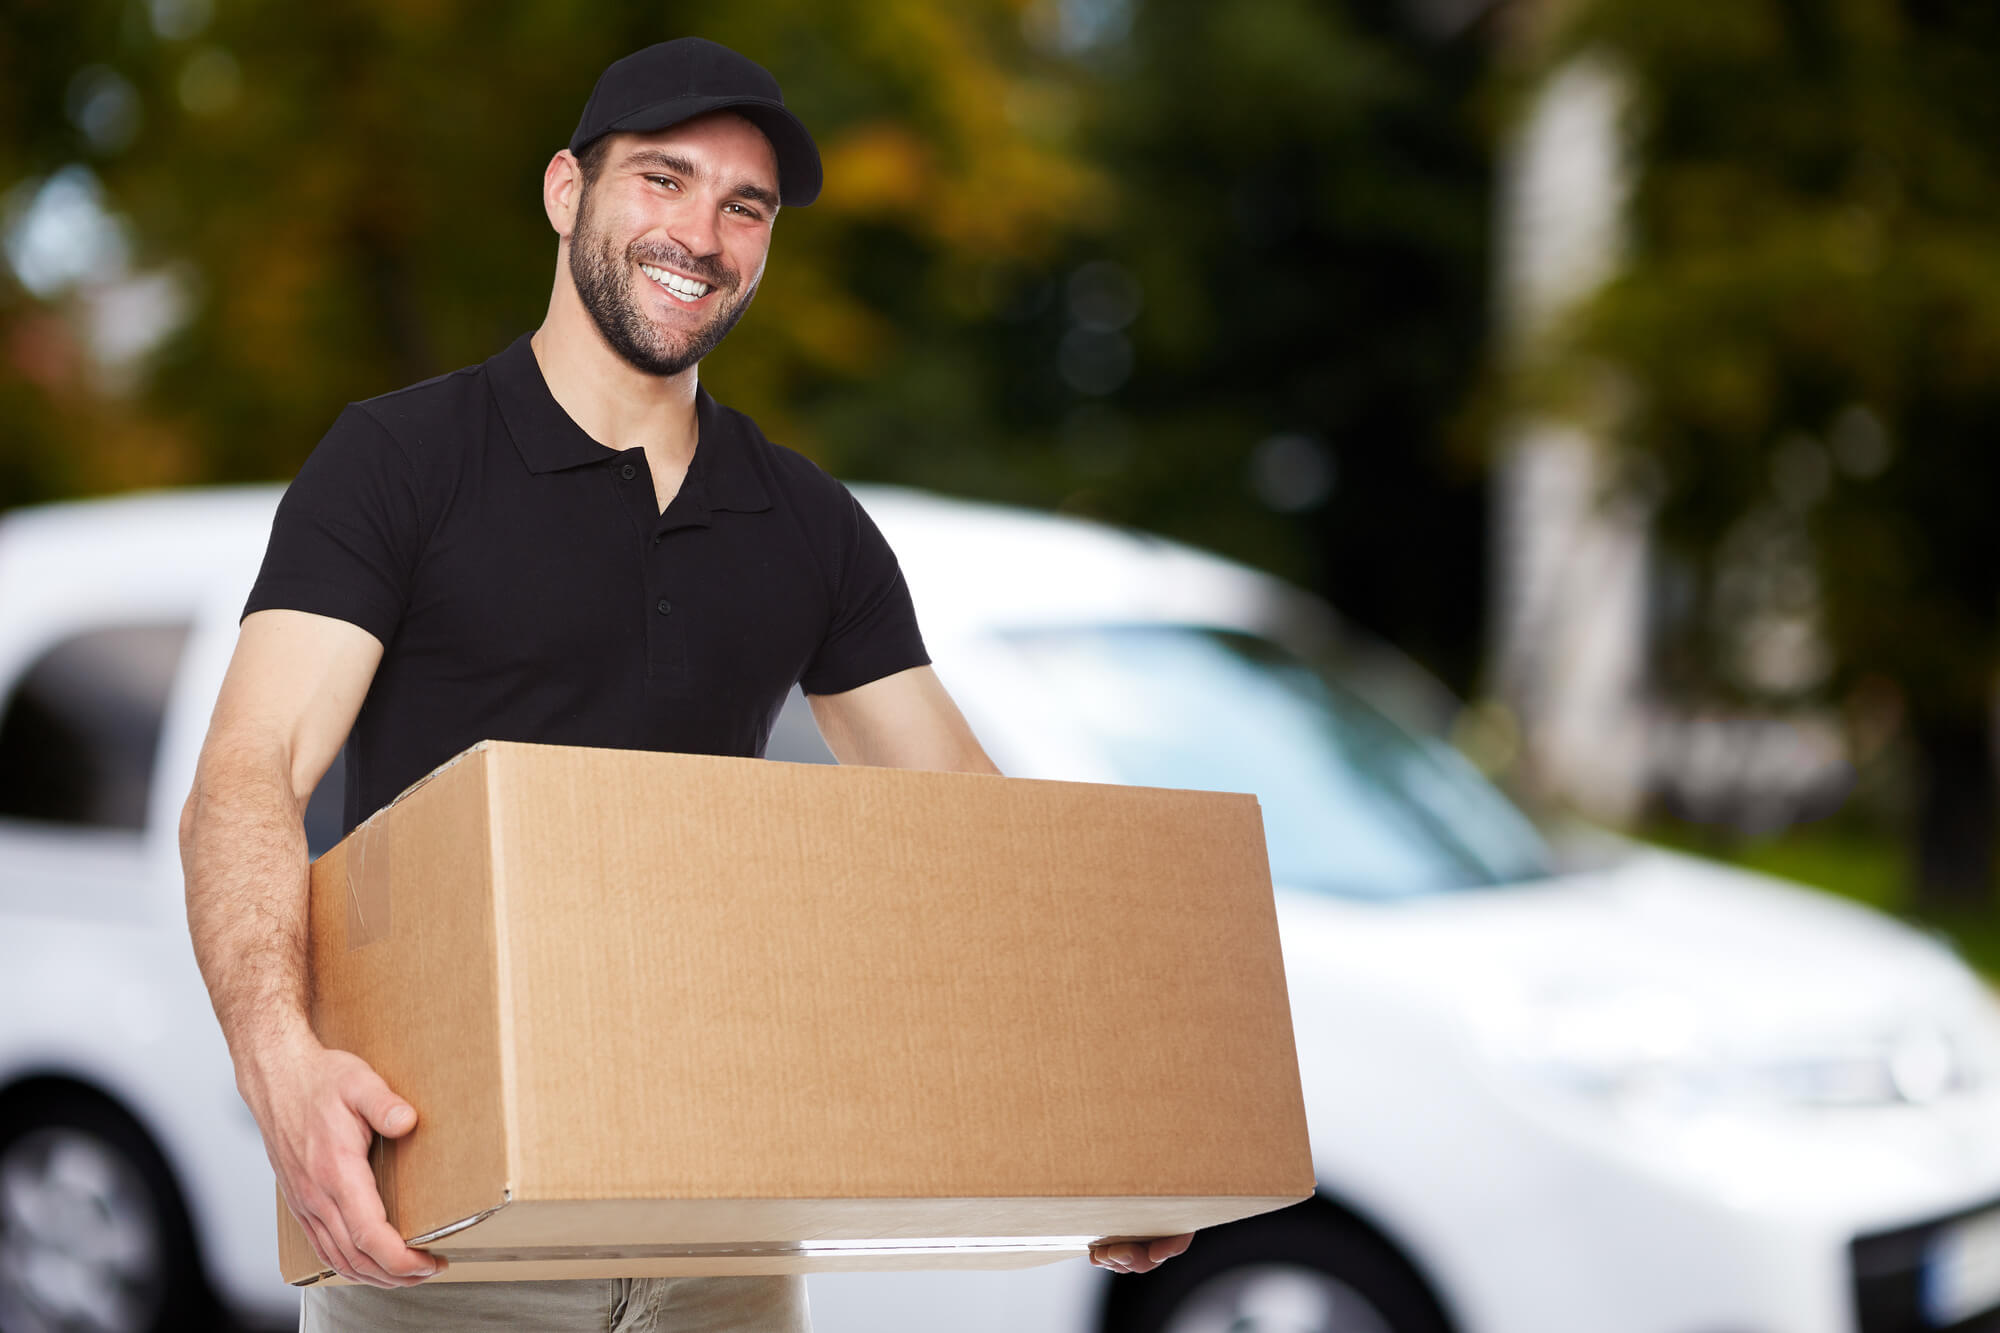 Moving Company Tips: How to Start a Successful Moving Business